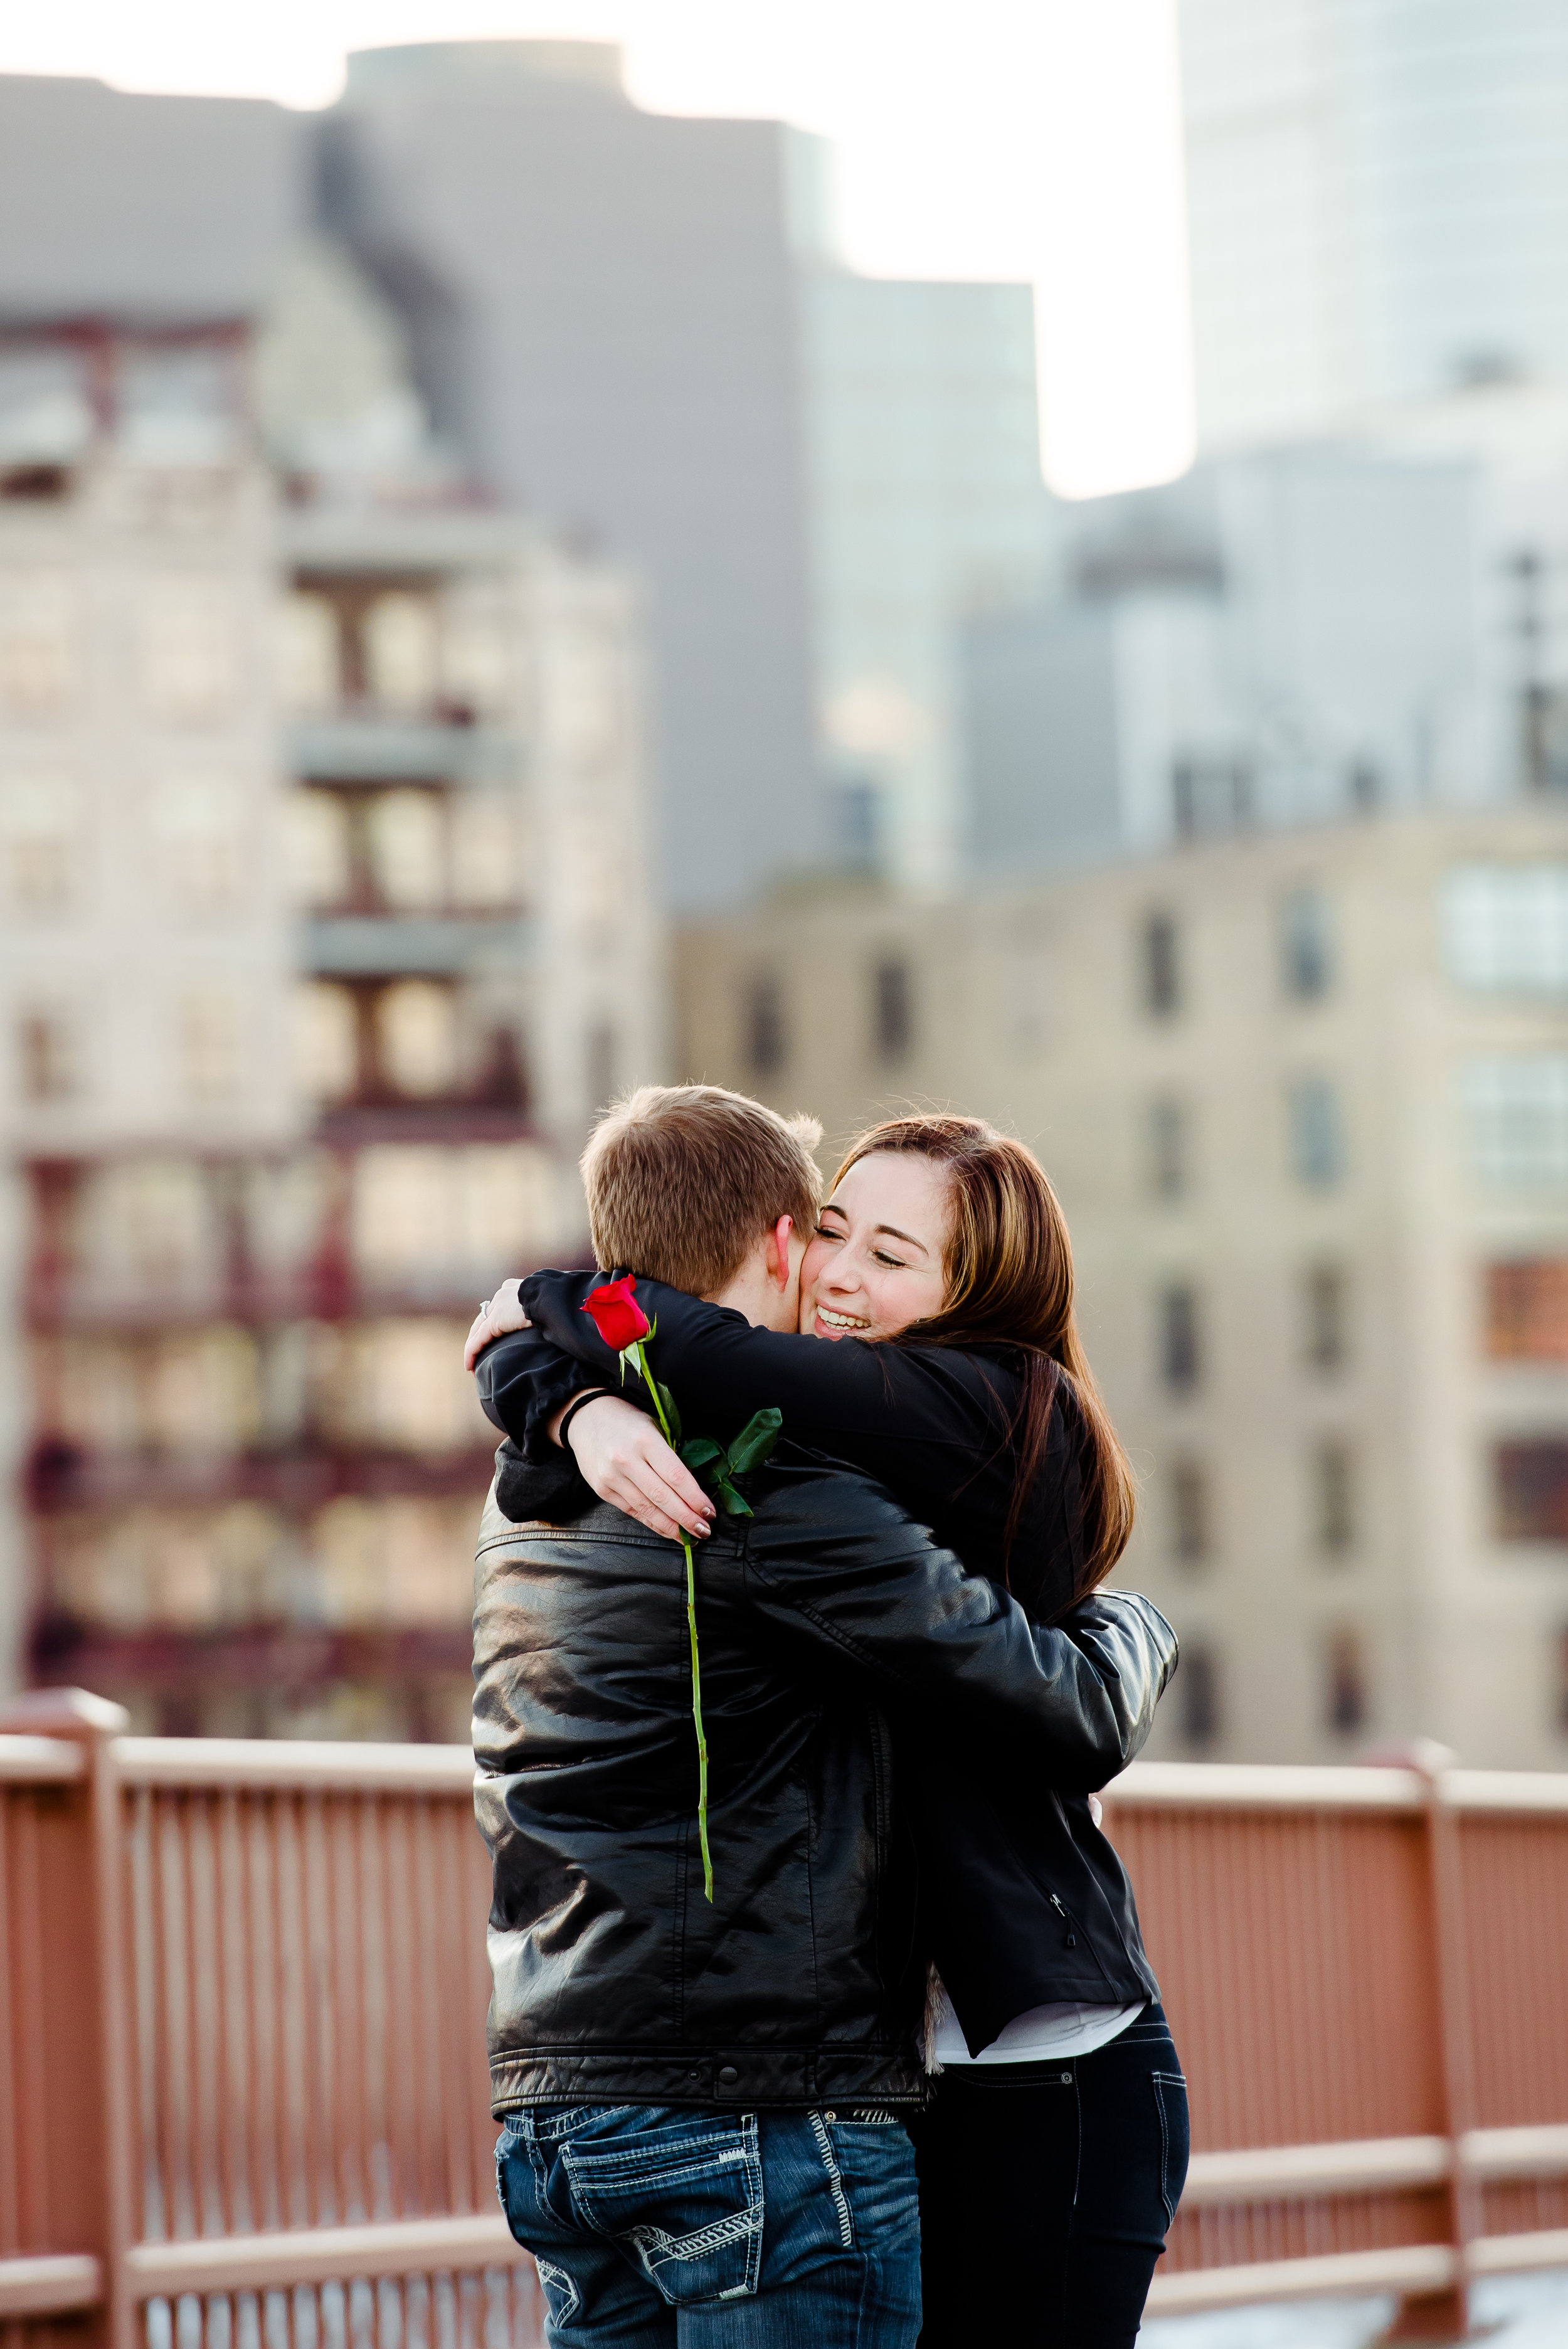 Stone Arch Bridge - Single Red Rose - She Said Yes - How He Asked - Twin Cities Proposal Photographer